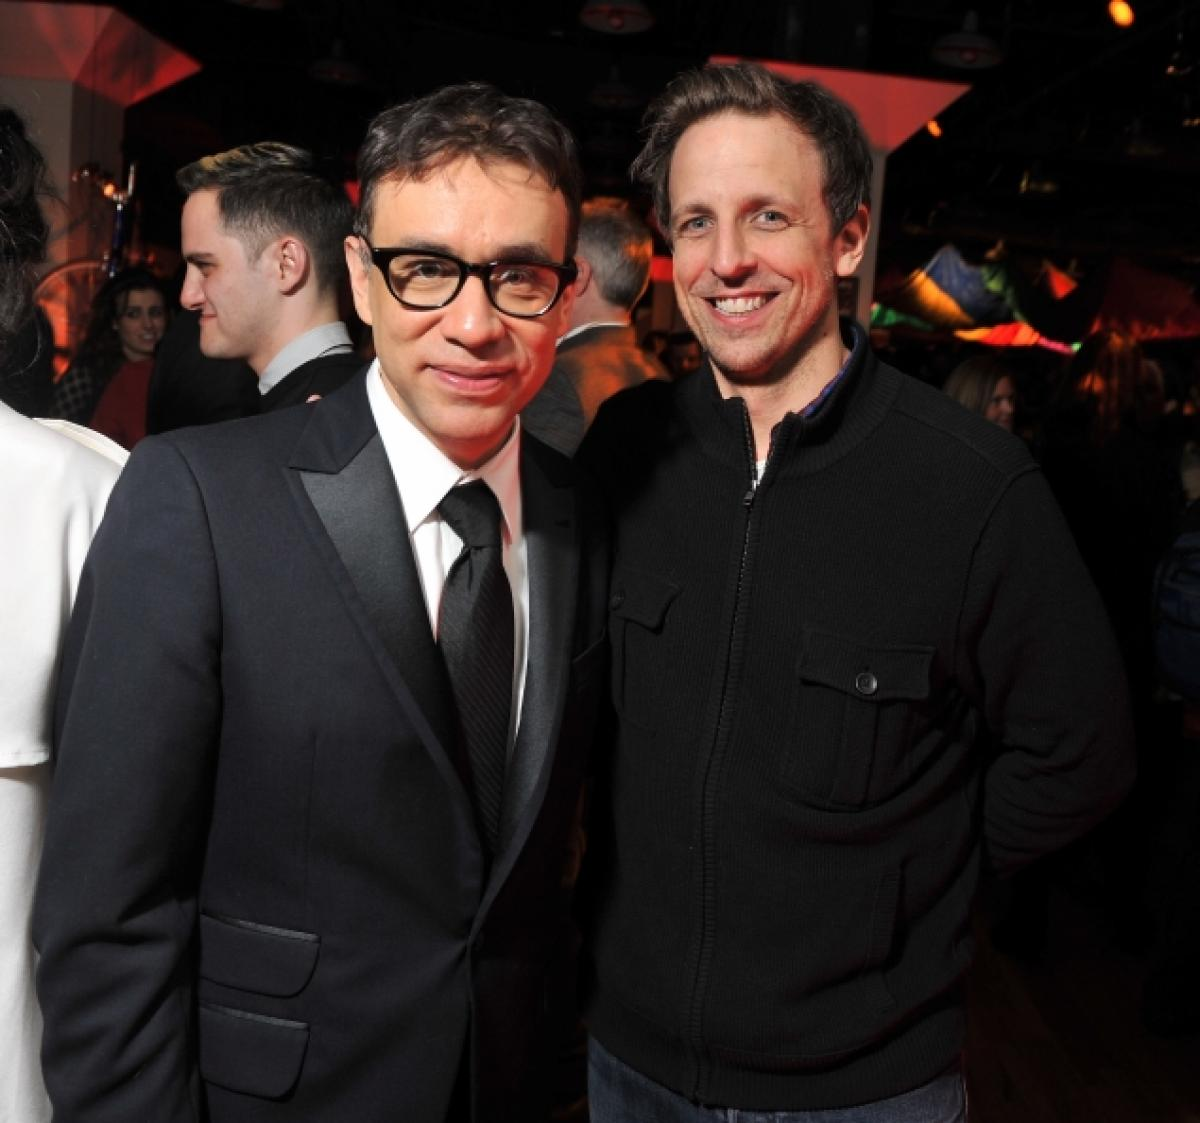 Fred Armisen gives the skinny on his new gig (as well as an education in punk rock)